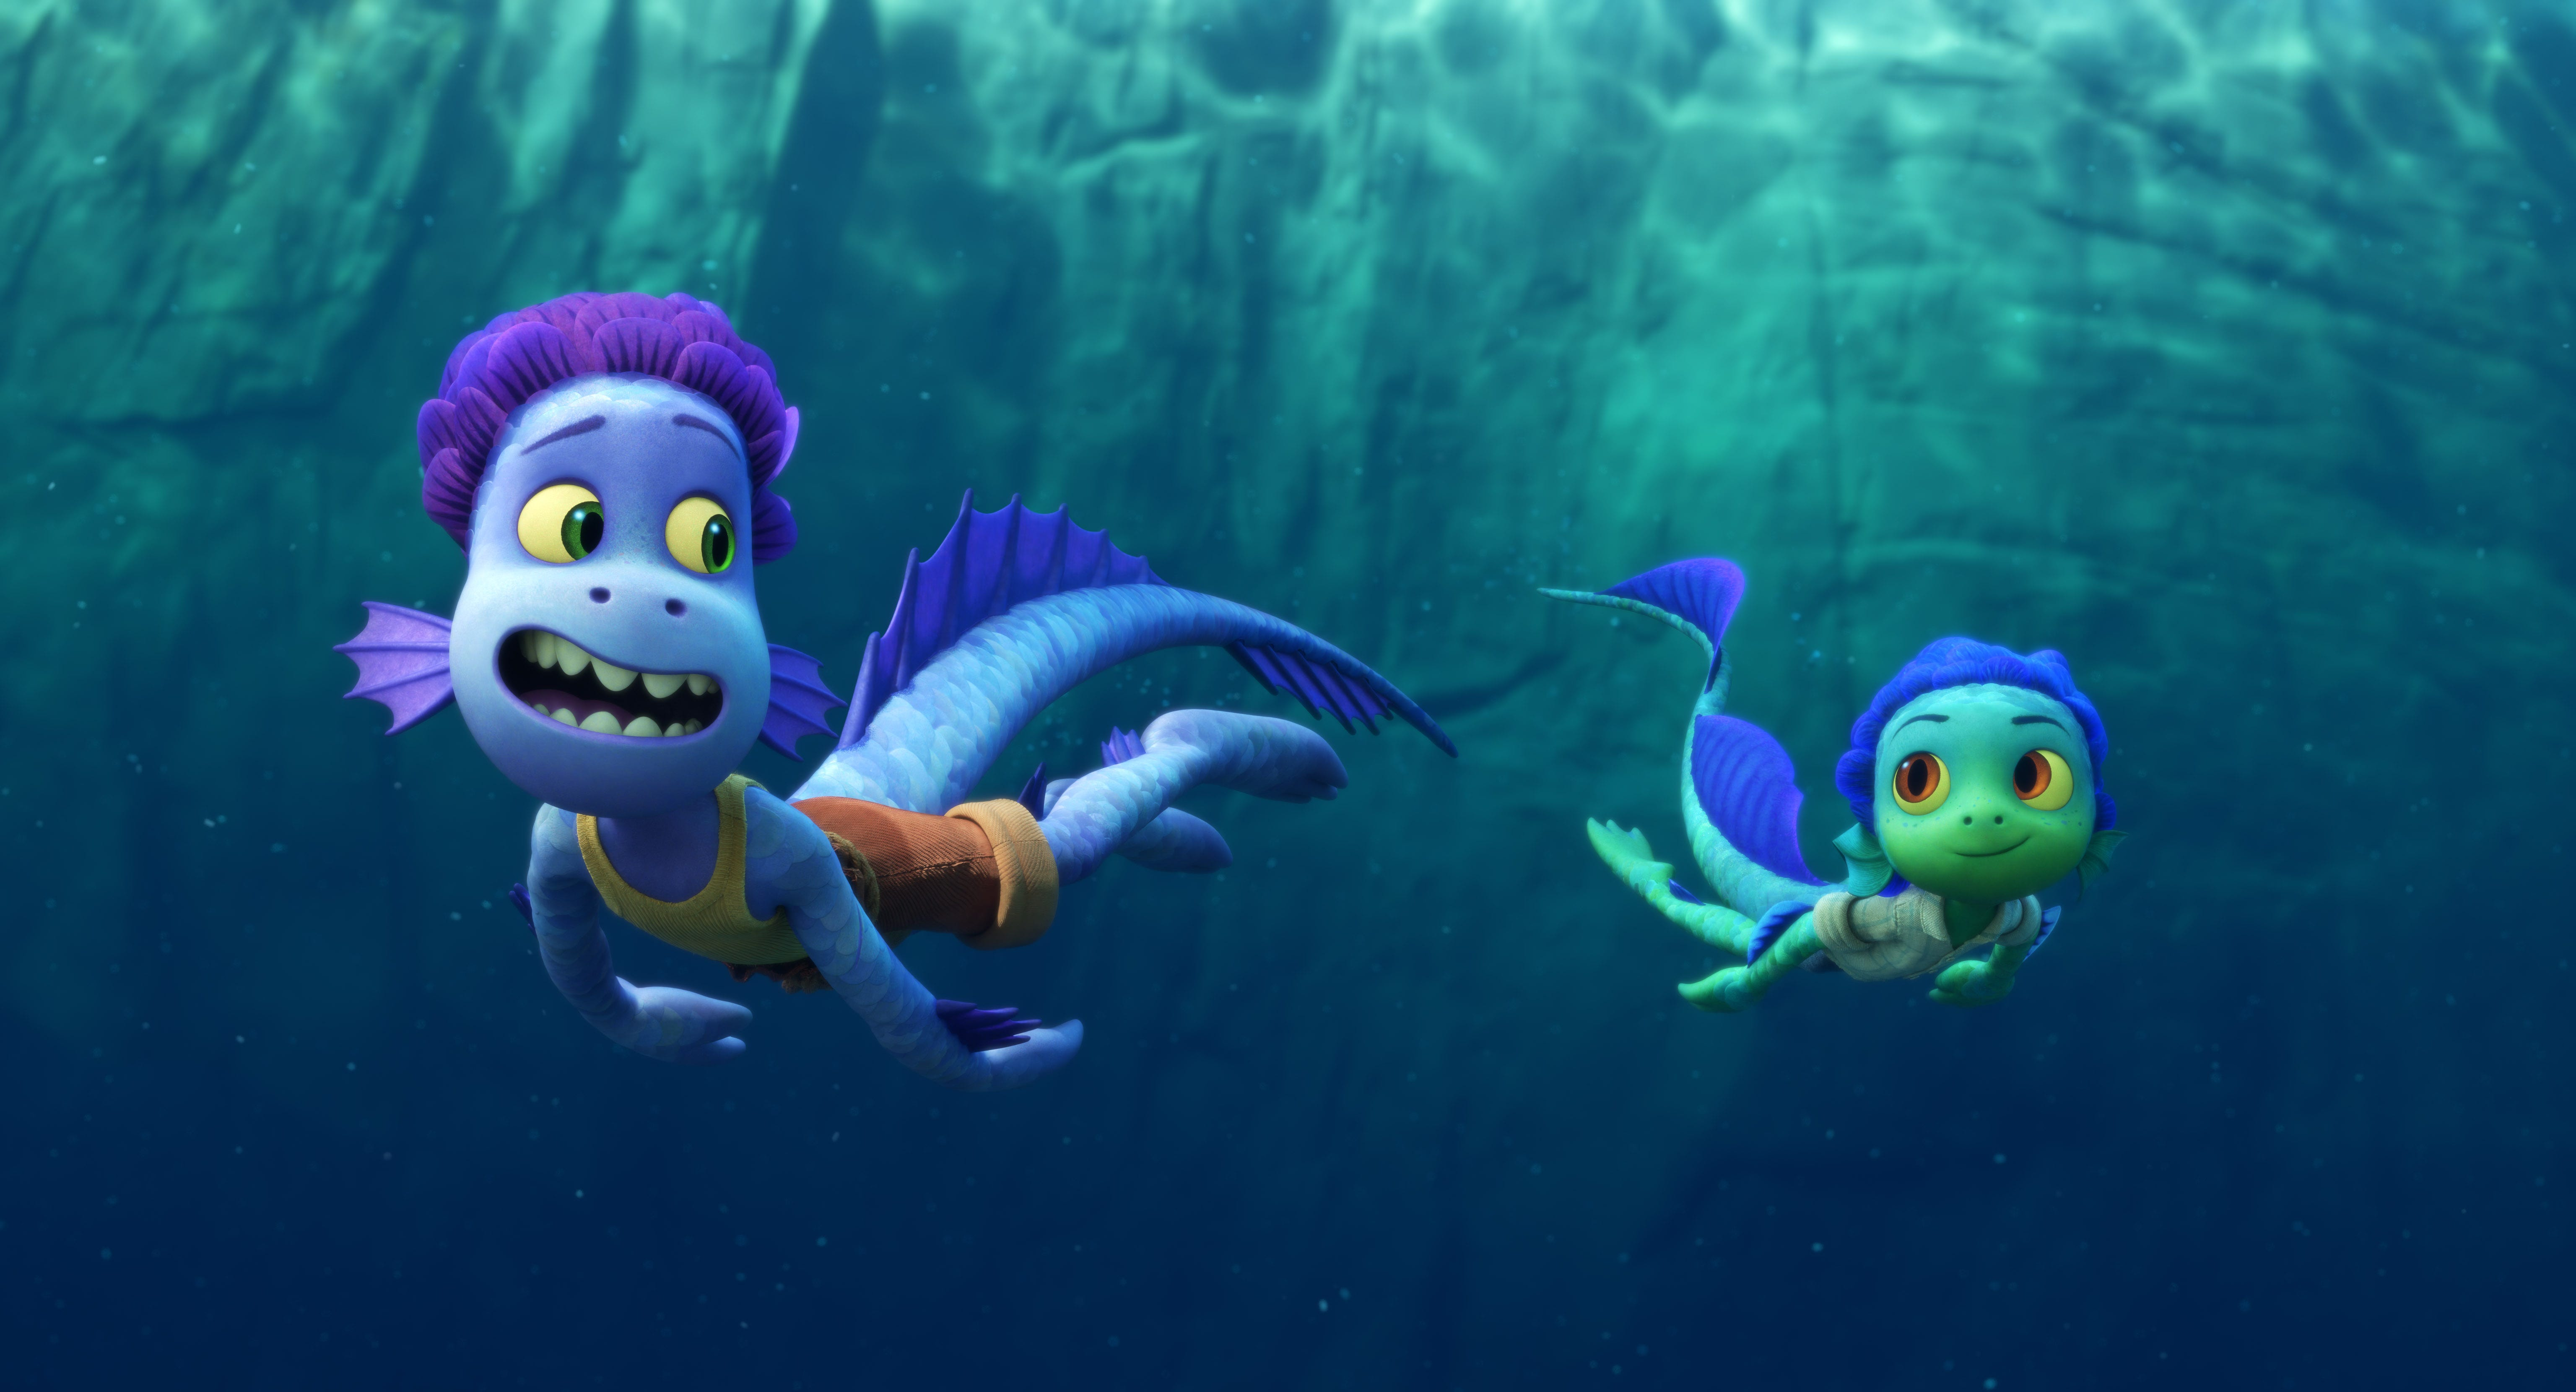 Pixar s  Luca  design inspired by ancient maps, sea iguanas: How the film s look came together